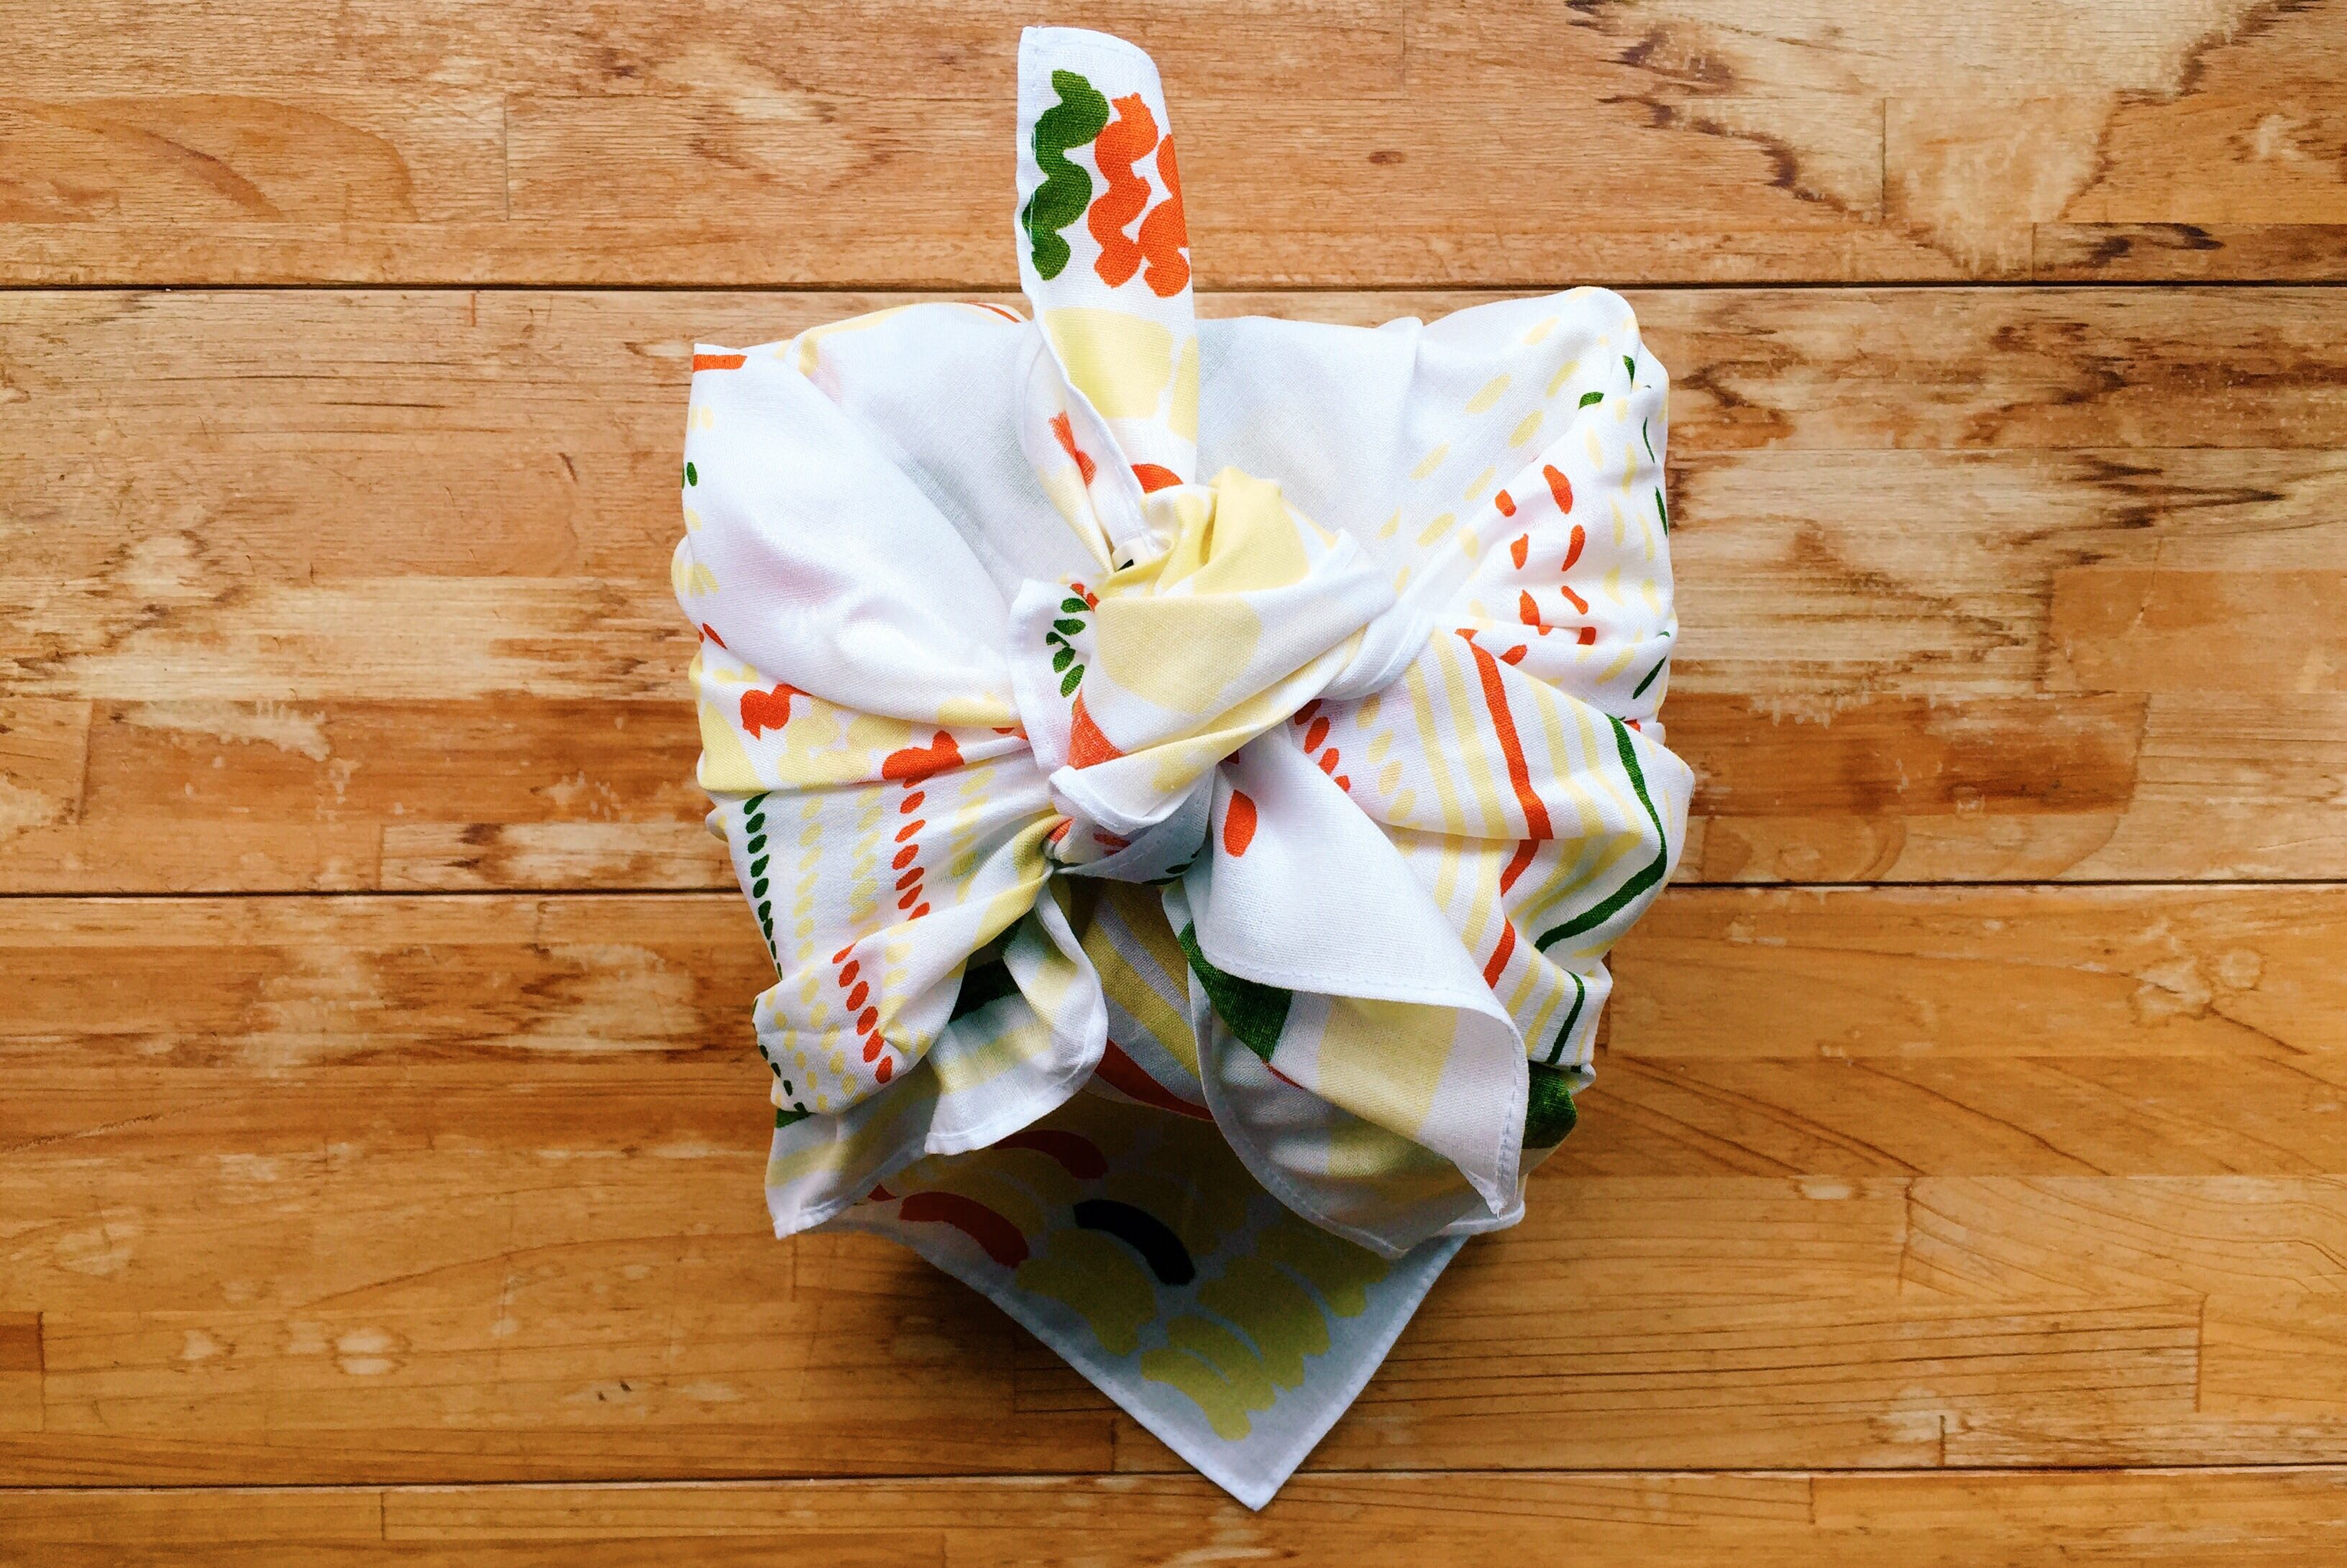 Wrap your bento in a cloth known as a furoshiki